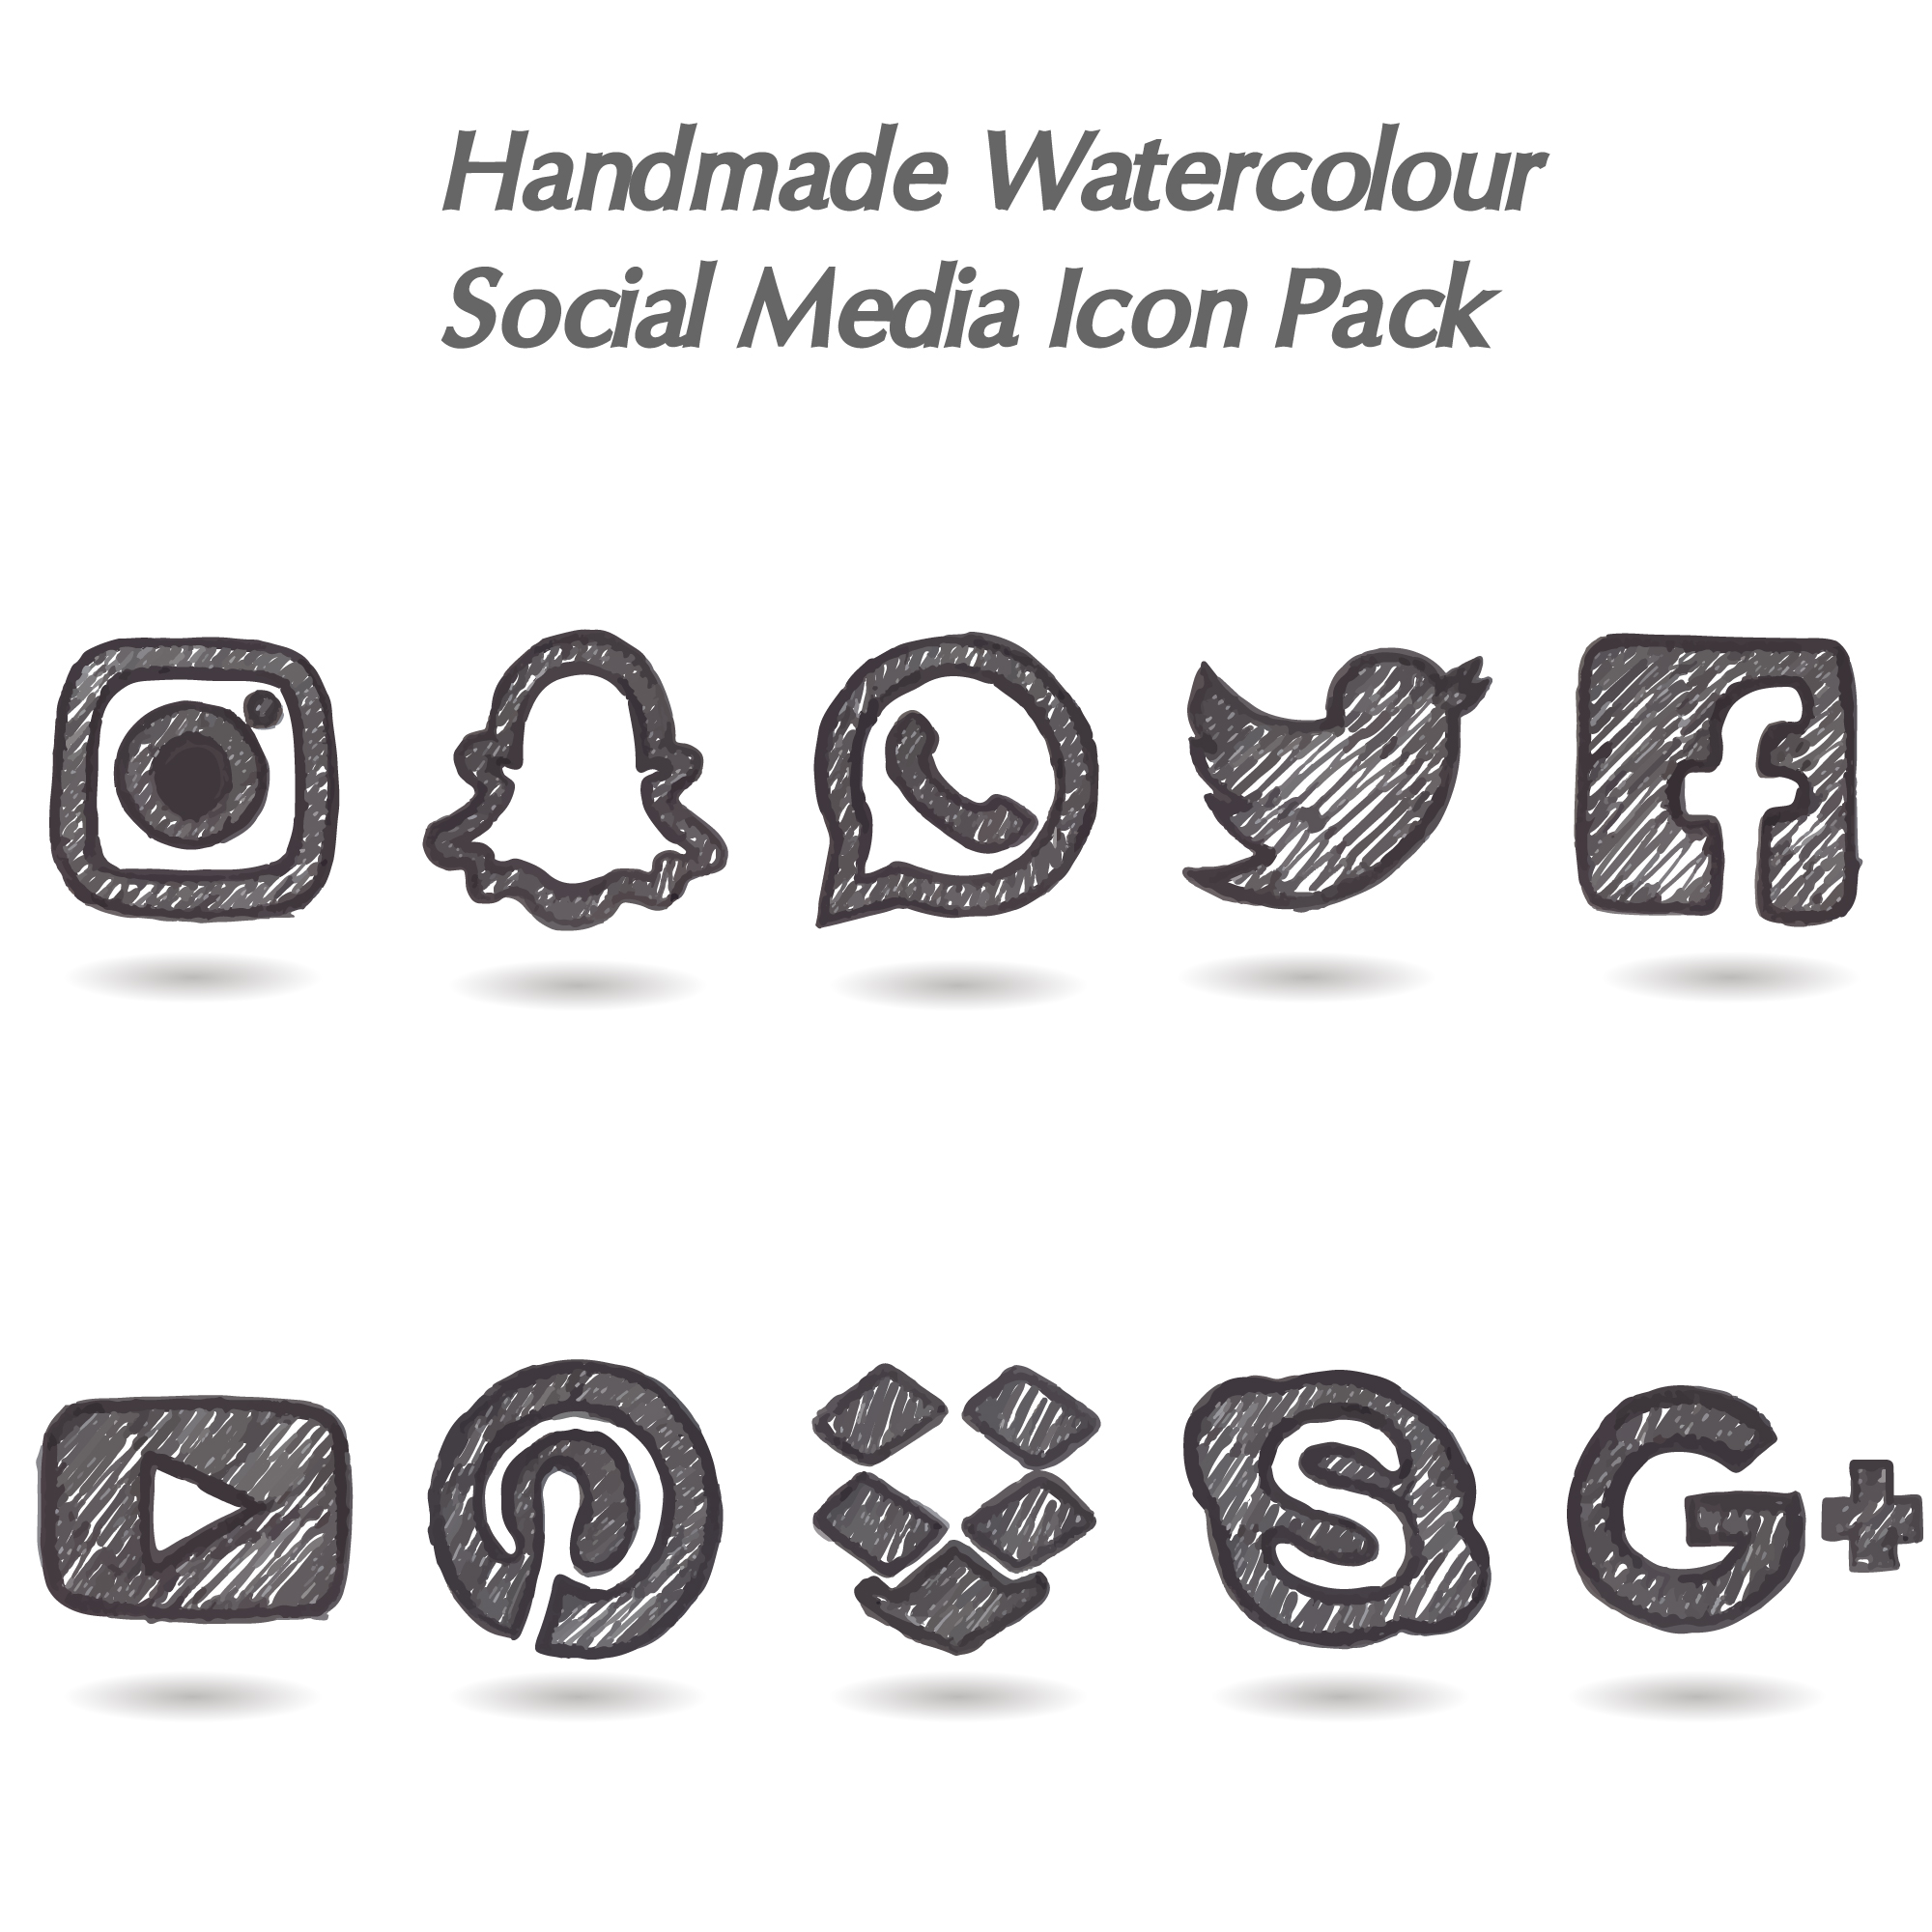 Hand made watercolor social media icon pack